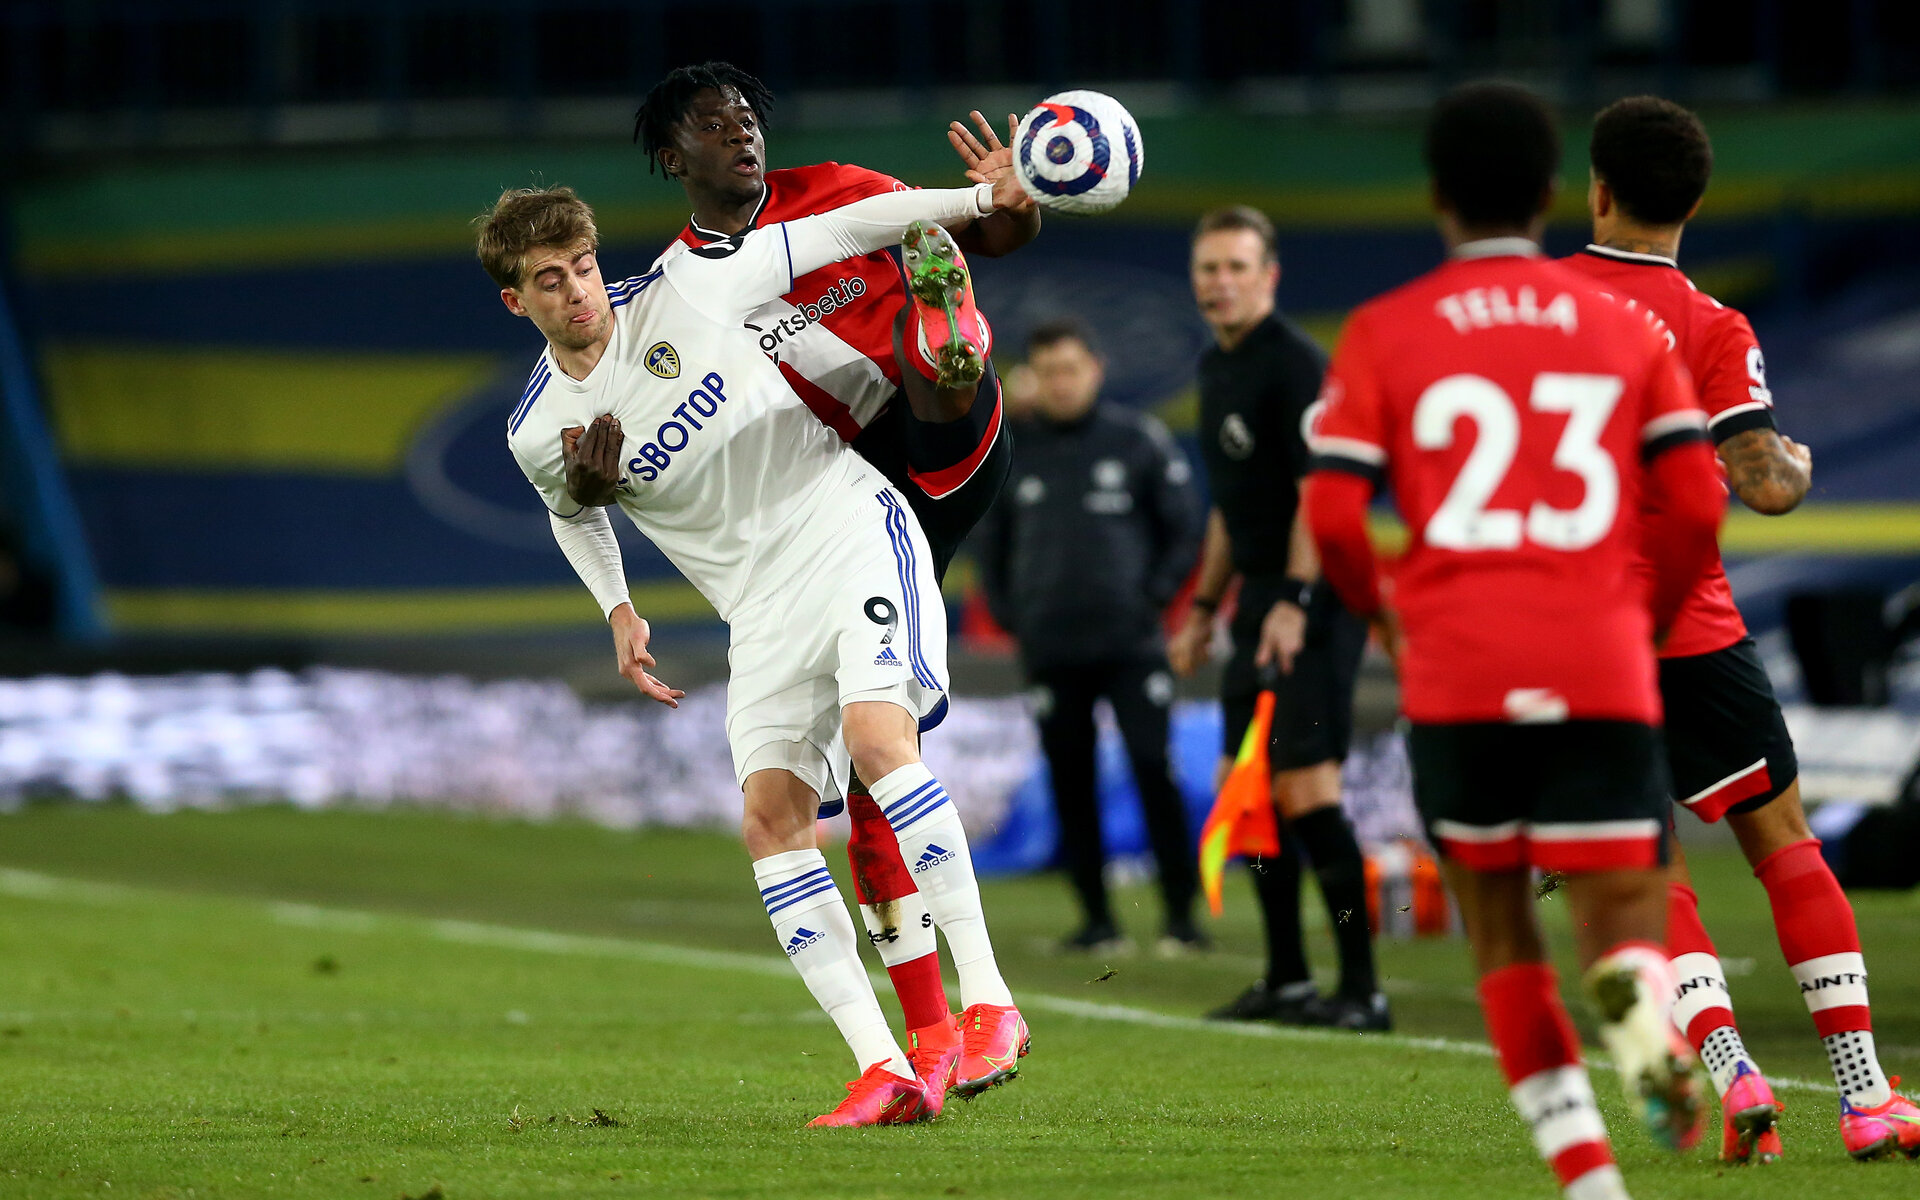 LEEDS, ENGLAND - FEBRUARY 23: Mohammed Salisu(R) of Southampton and Patrick Bamford(L) of Leeds during the Premier League match between Leeds United and Southampton at Elland Road on February 23, 2021 in Leeds, England. Sporting stadiums around the UK remain under strict restrictions due to the Coronavirus Pandemic as Government social distancing laws prohibit fans inside venues resulting in games being played behind closed doors. (Photo by Matt Watson/Southampton FC via Getty Images)